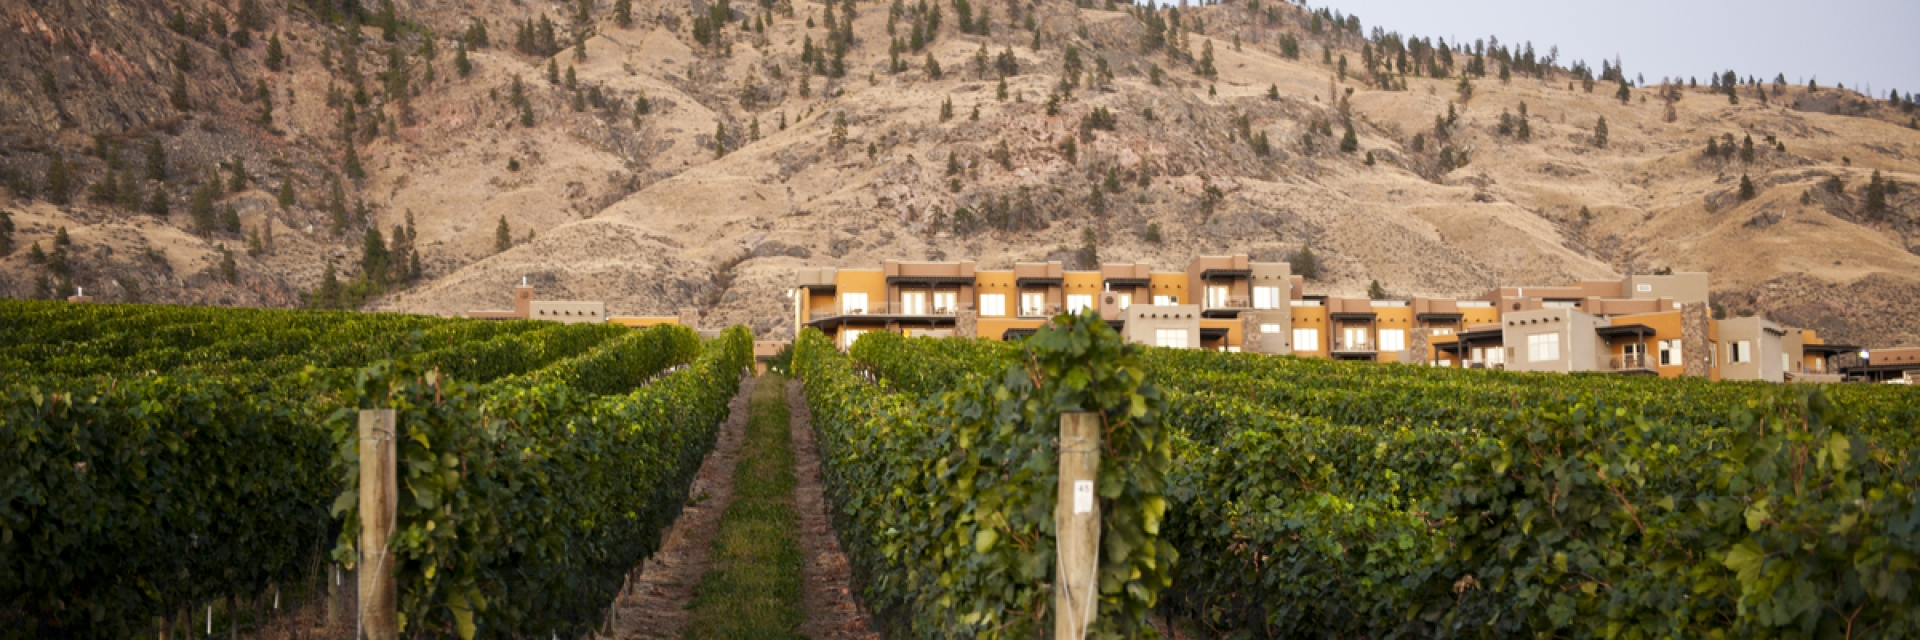 A vineyard in Thompson Okanagan, British Columbia